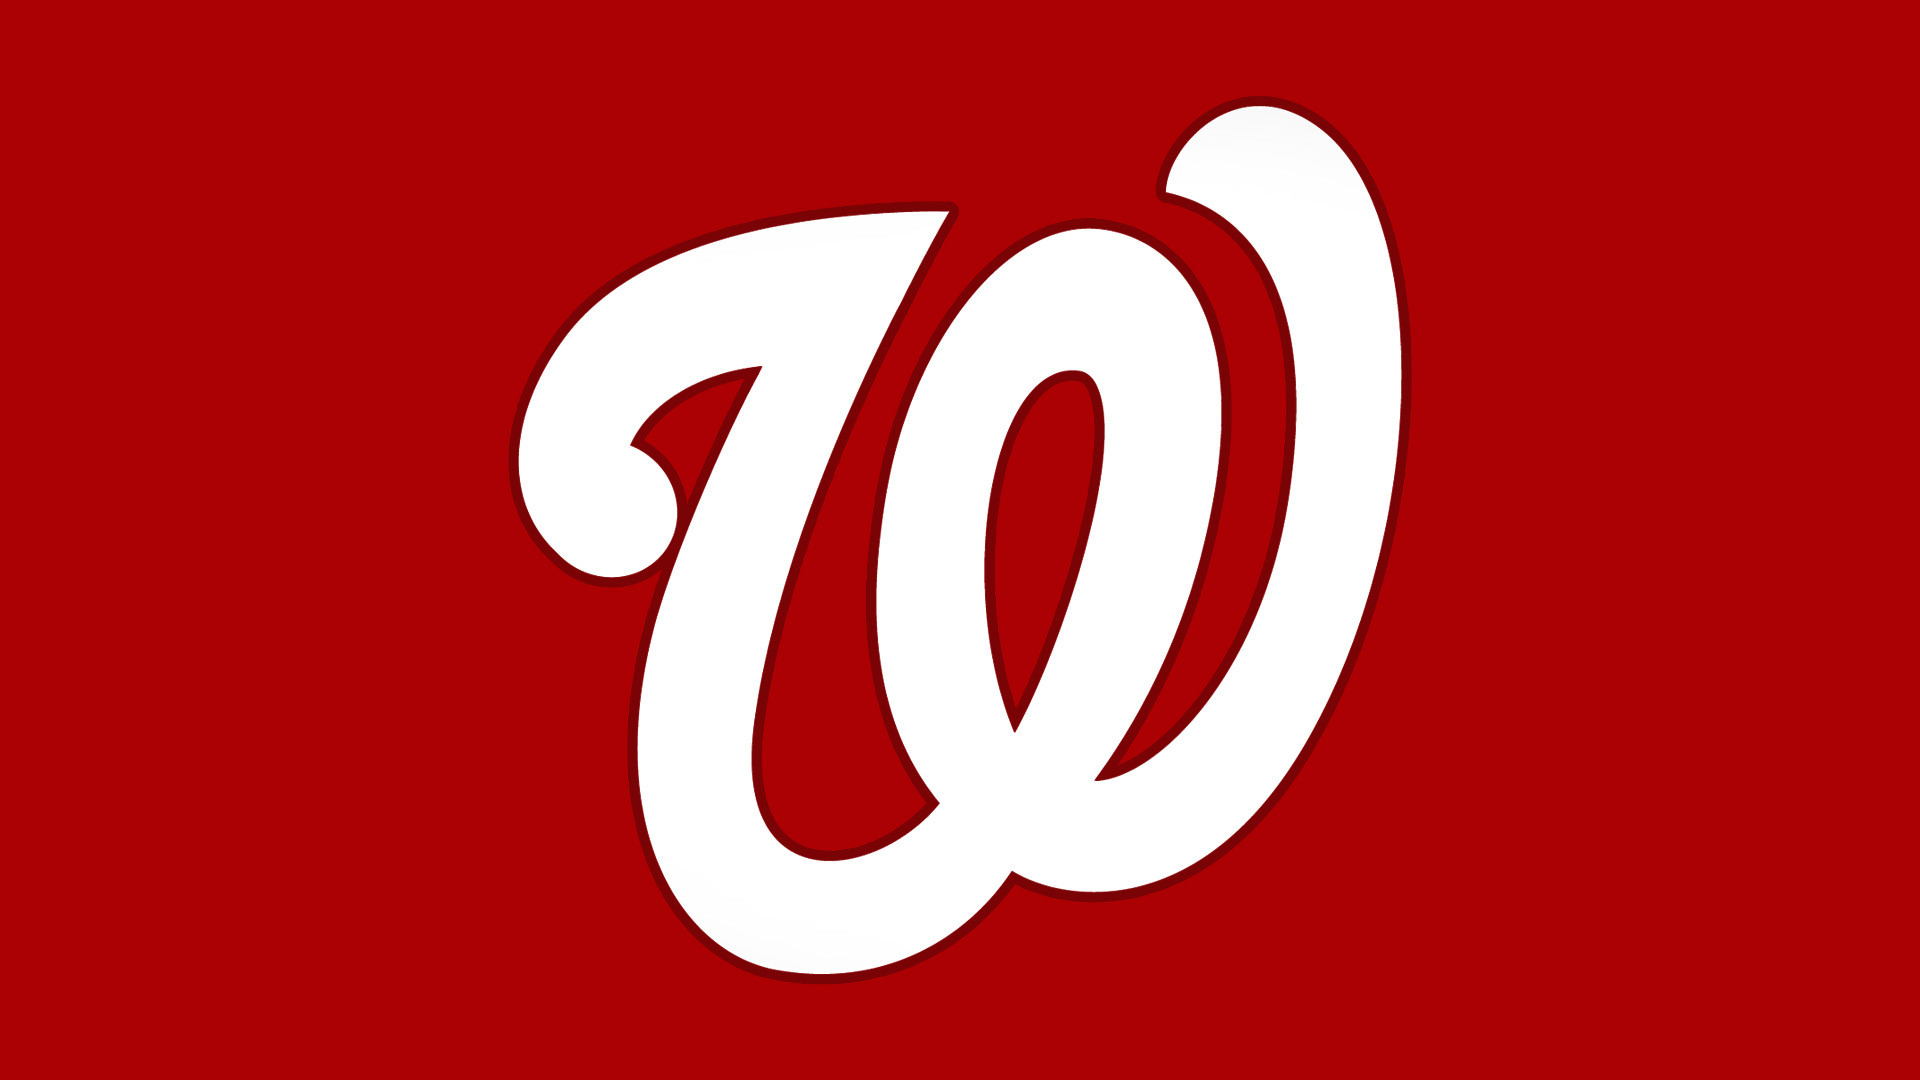 1920x1080 Washington Nationals Wallpaper 1920×1080 Nationals Wallpapers | Adorable  Wallpapers | Wallpapers | Pinterest | Wallpaper